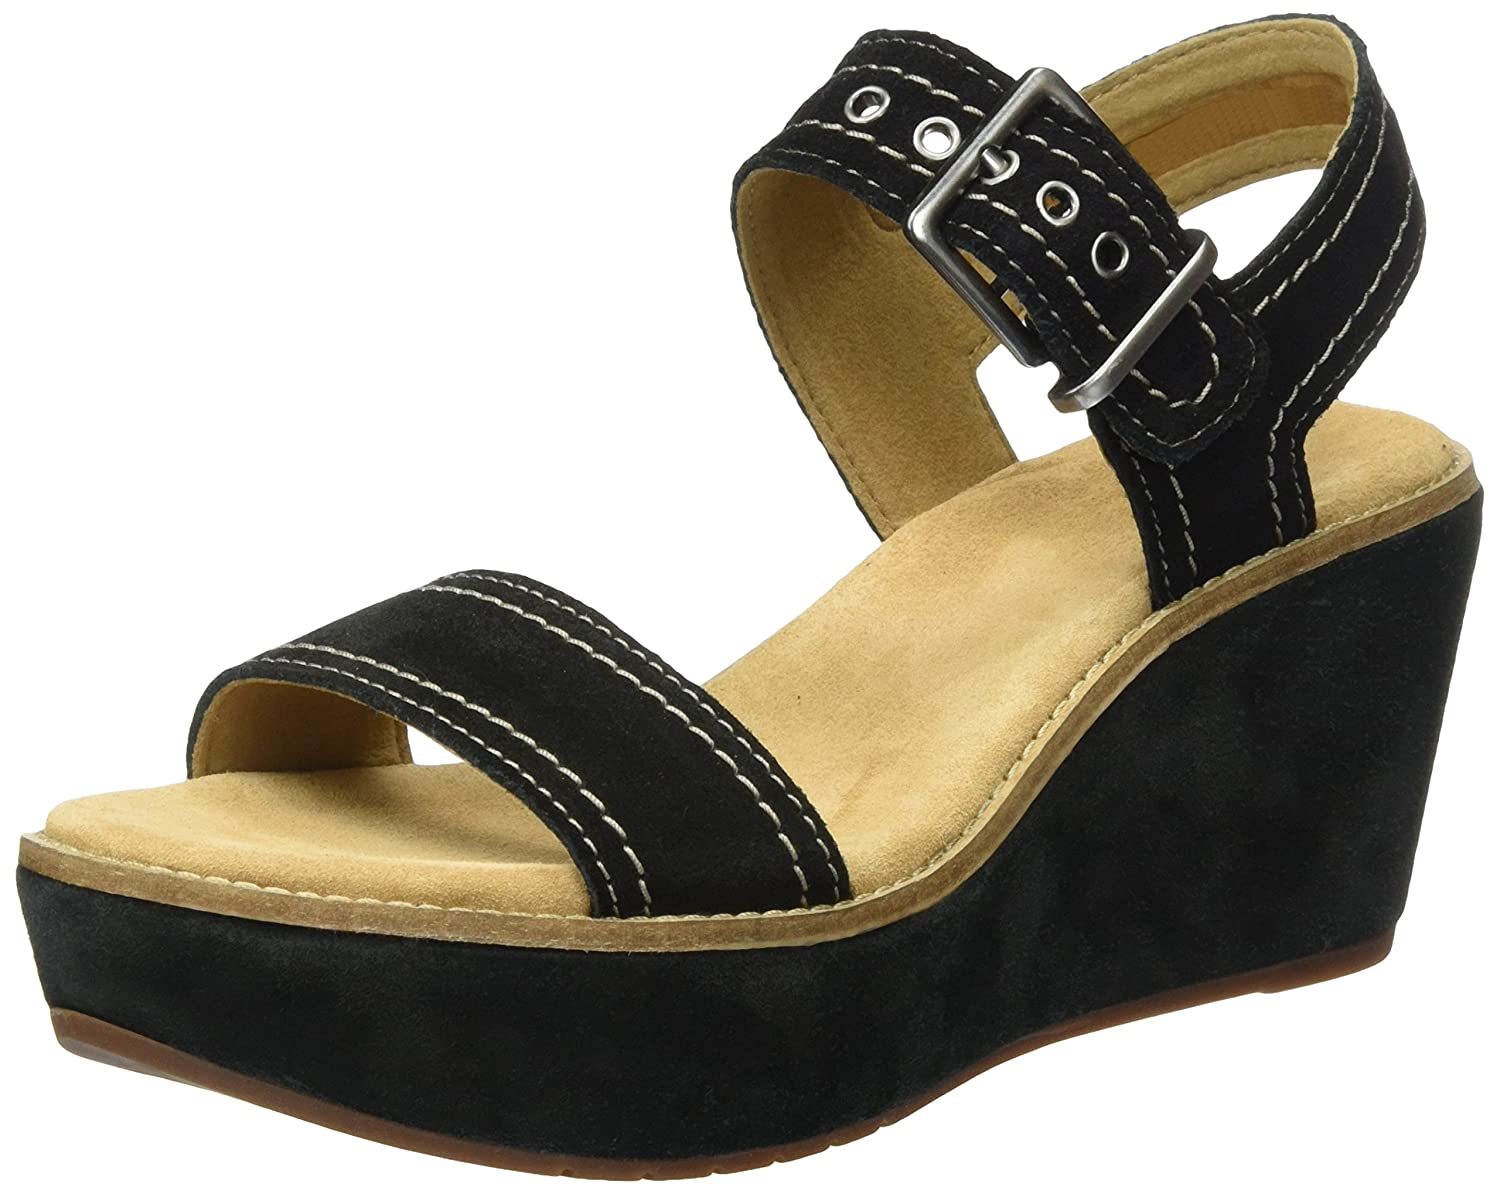 7f8345bc8226 Clarks Women s Aisley Orchid Wedge Sandal Brown  Amazon.co.uk  Shoes ...